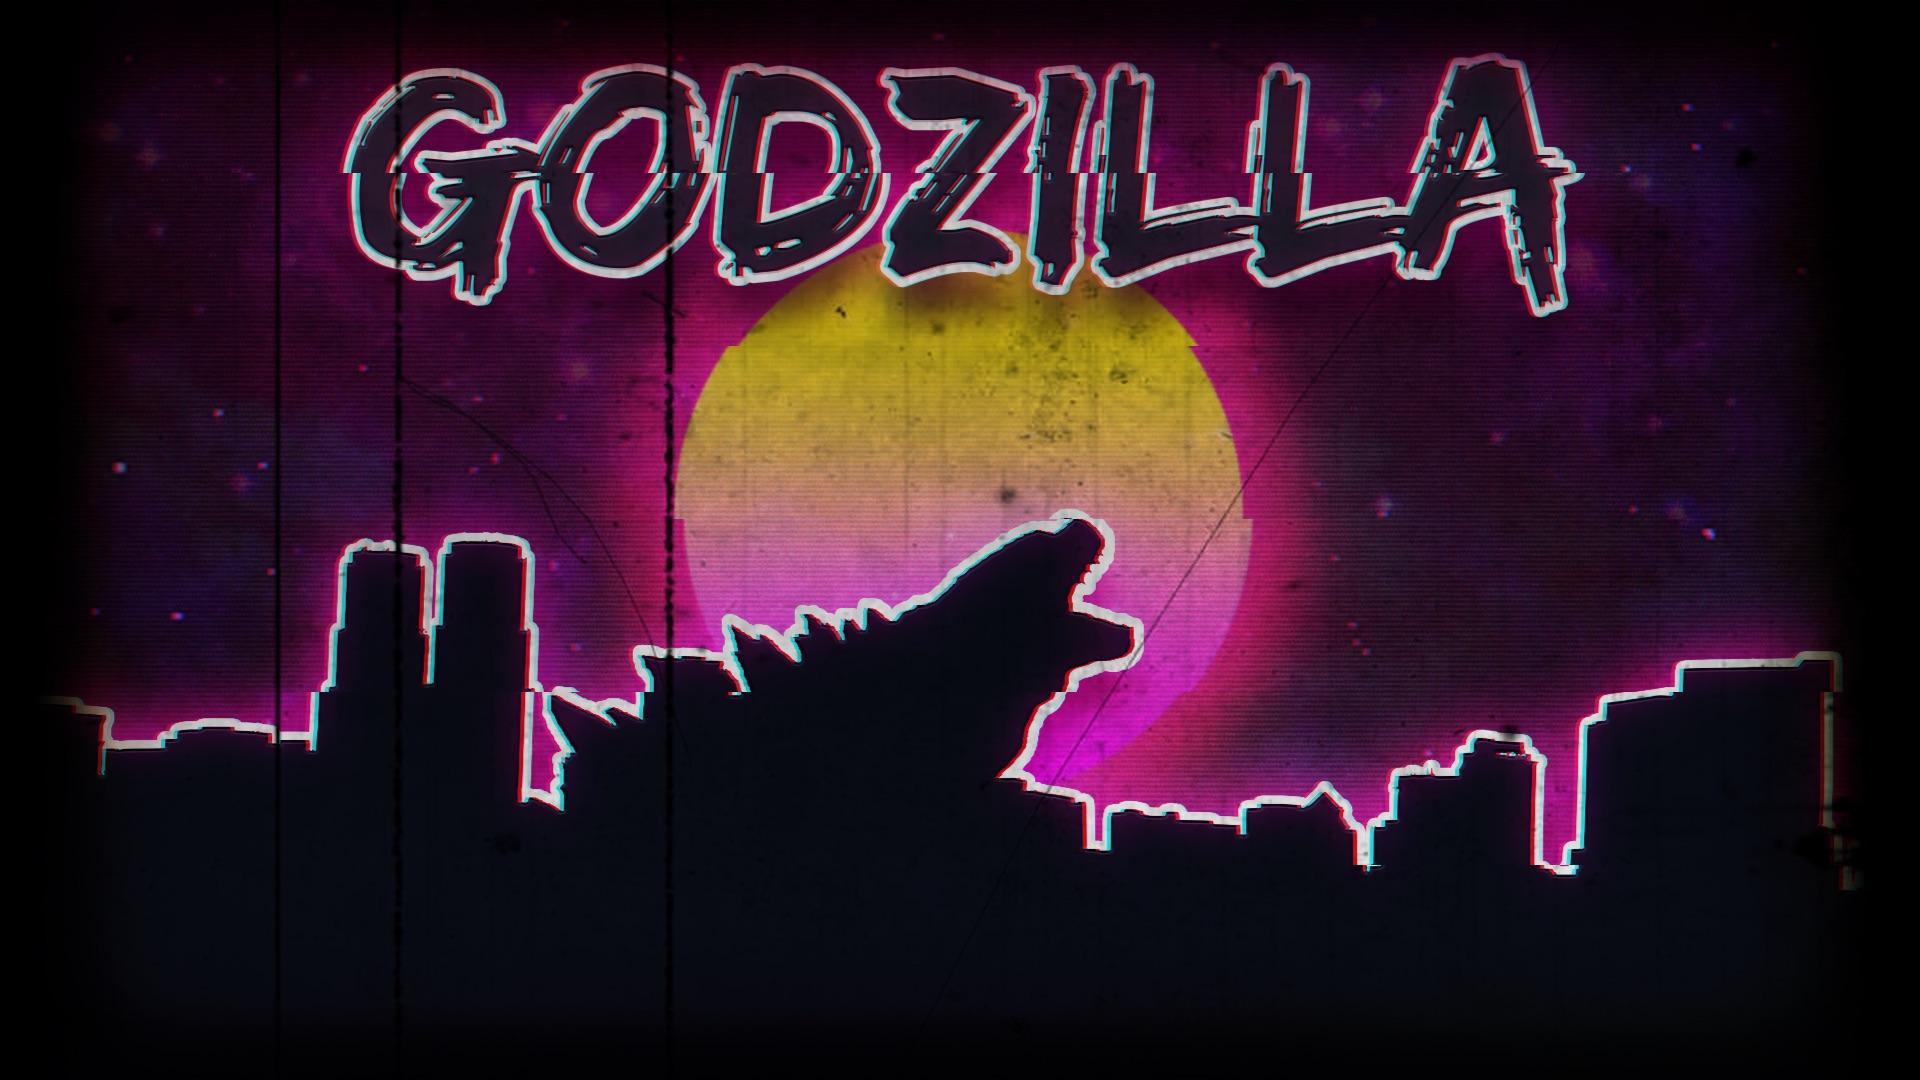 A-retro-s-style-godzilla-I-threw-together-in-photoshop-1920x1080-wallpaper-wp3602102